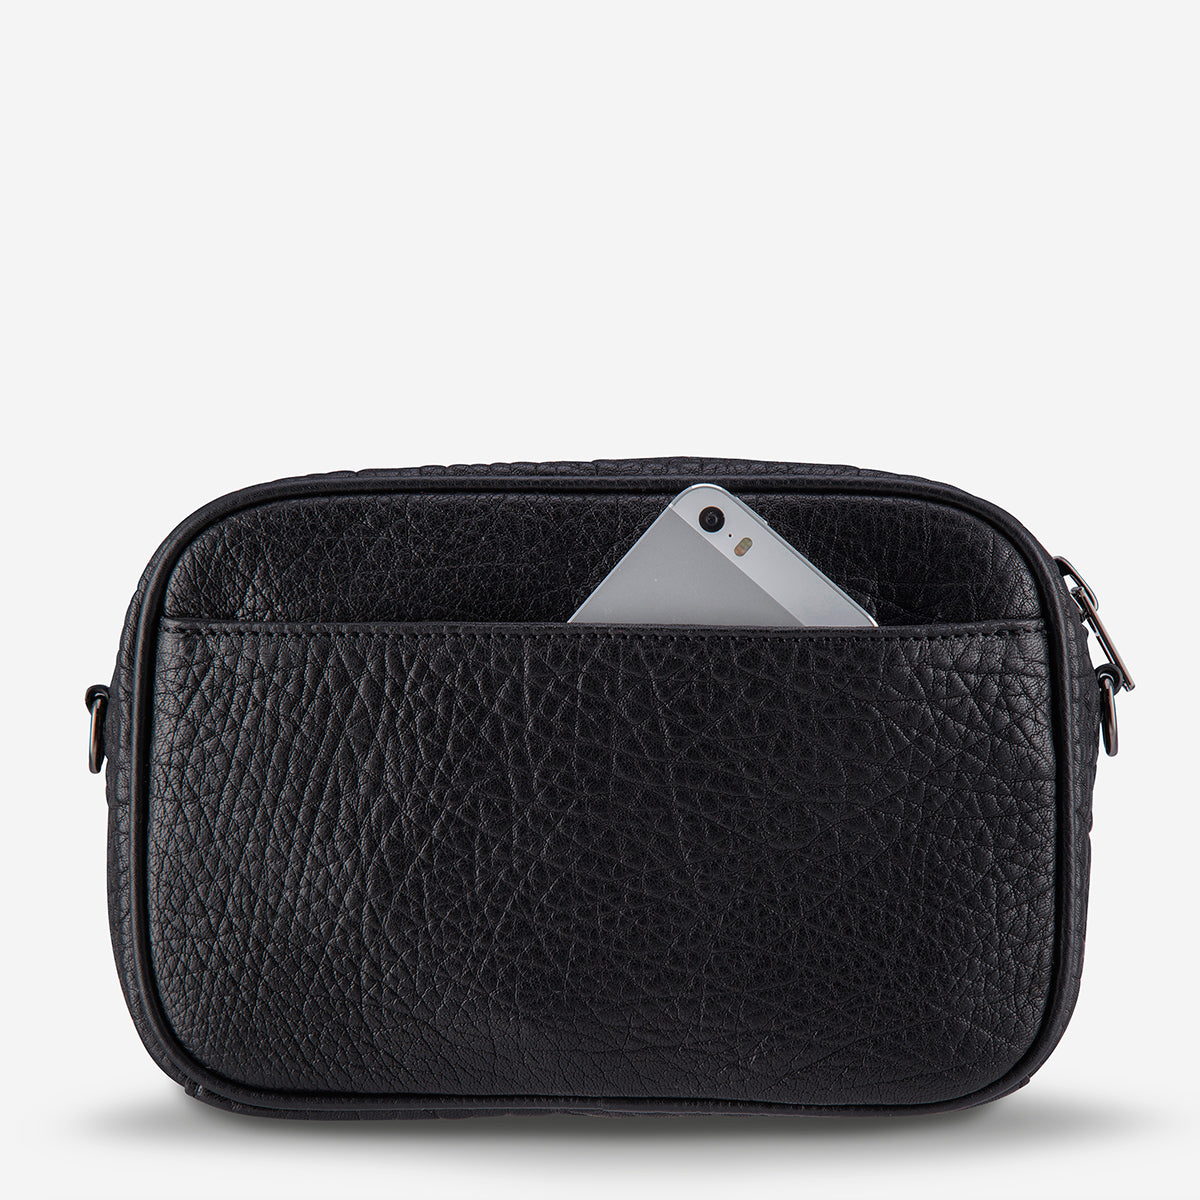 Status Anxiety Plunder Women's Leather Crossbody Bag - Black Bubble